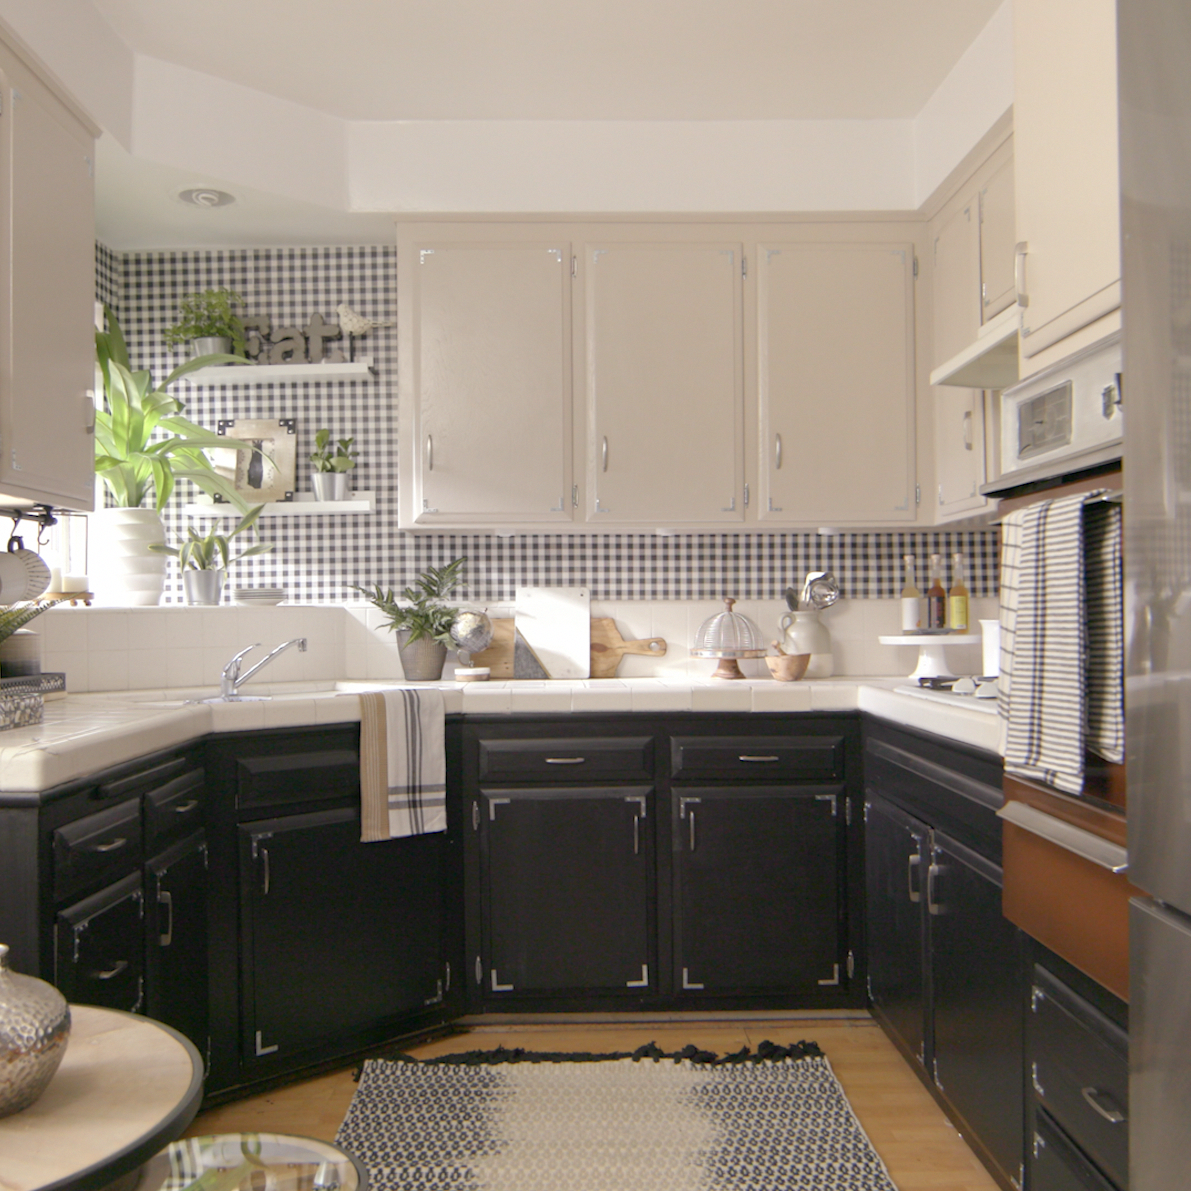 Home Kitchen Store: Who Wants A Bland Boring Kitchen? Watch Julie Khuu Use